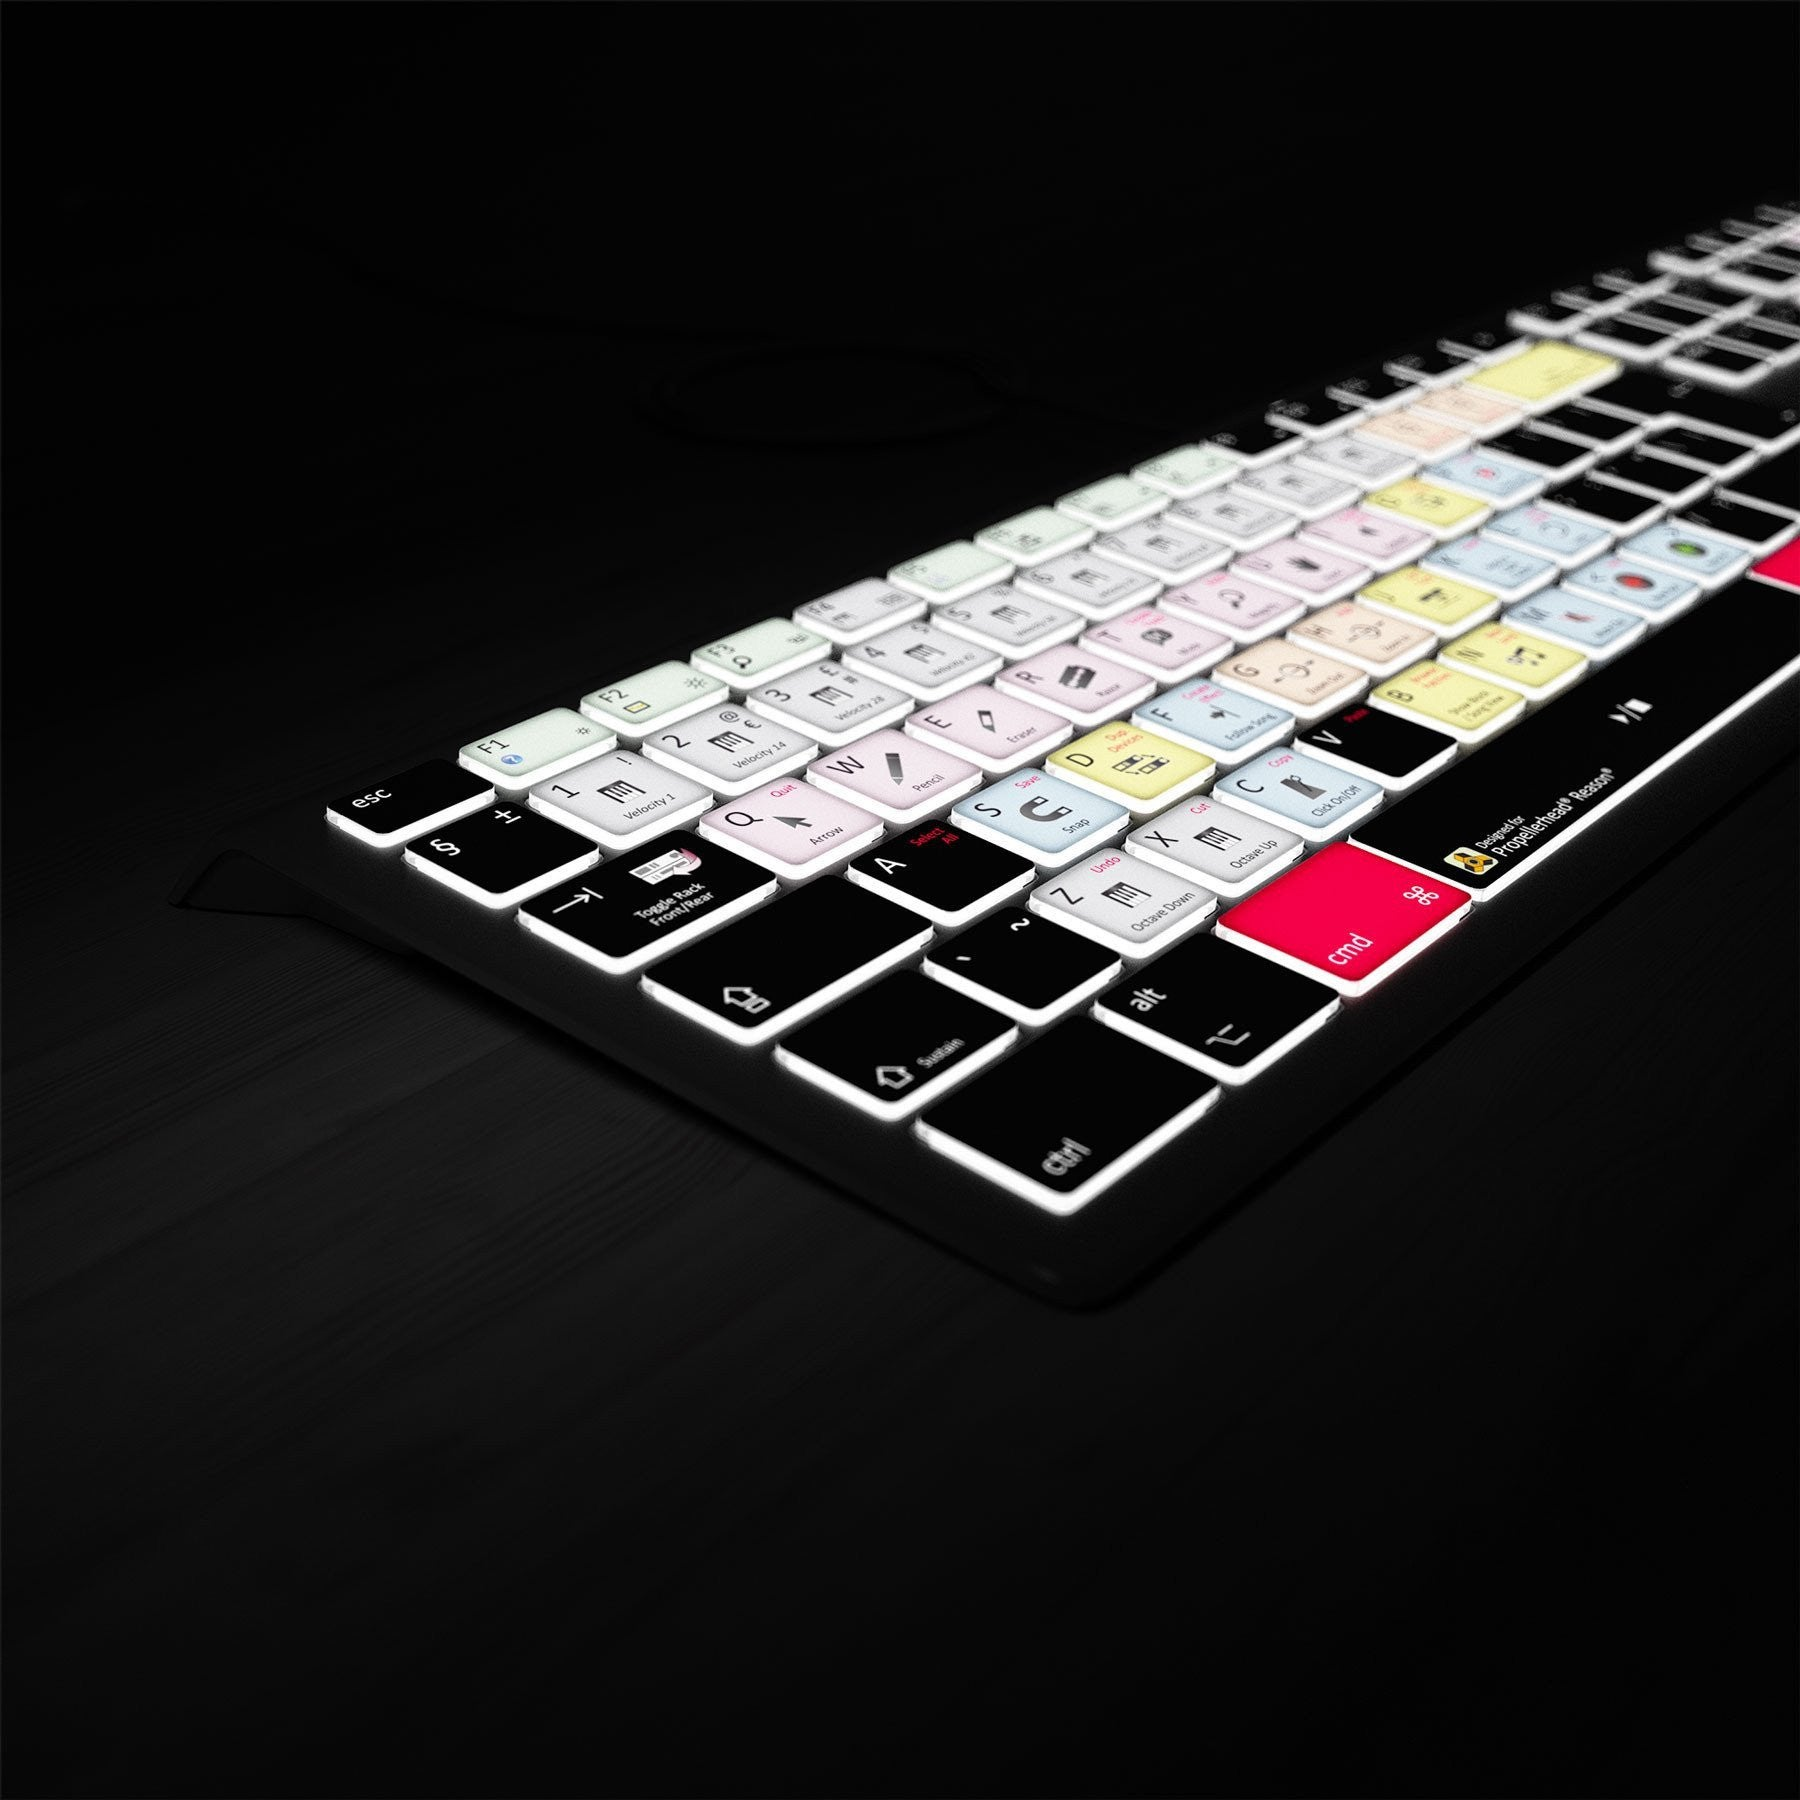 Propellerhead Reason Keyboard - Backlit - For Mac or PC